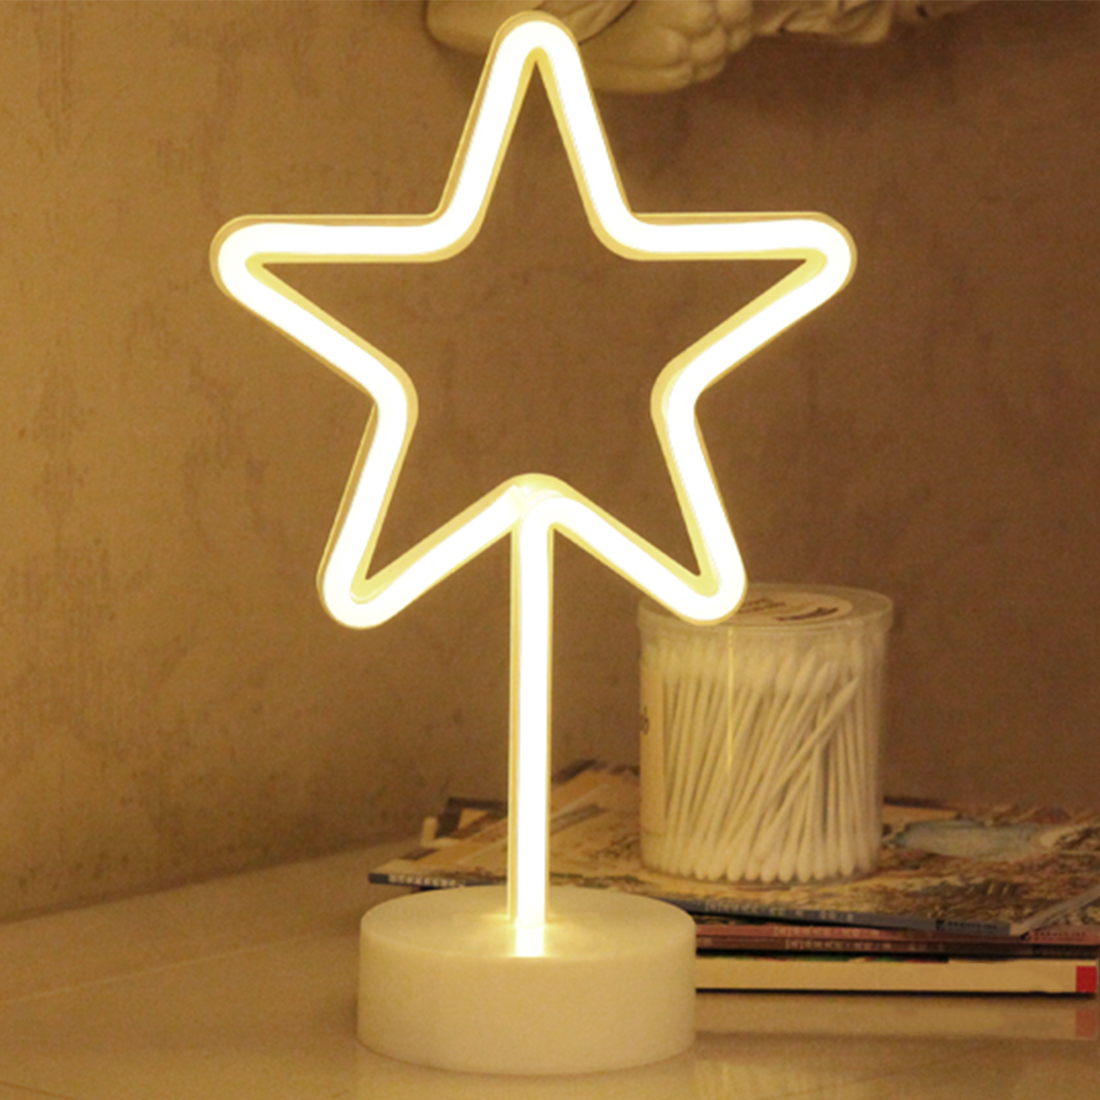 LED Neon Night Light Desk Lamp Star Shape Battery Operated for Holiday Light Festival Party Wedding DecorLED Neon Night Light Desk Lamp Star Shape Battery Operated for Holiday Light Festival Party Wedding Decor